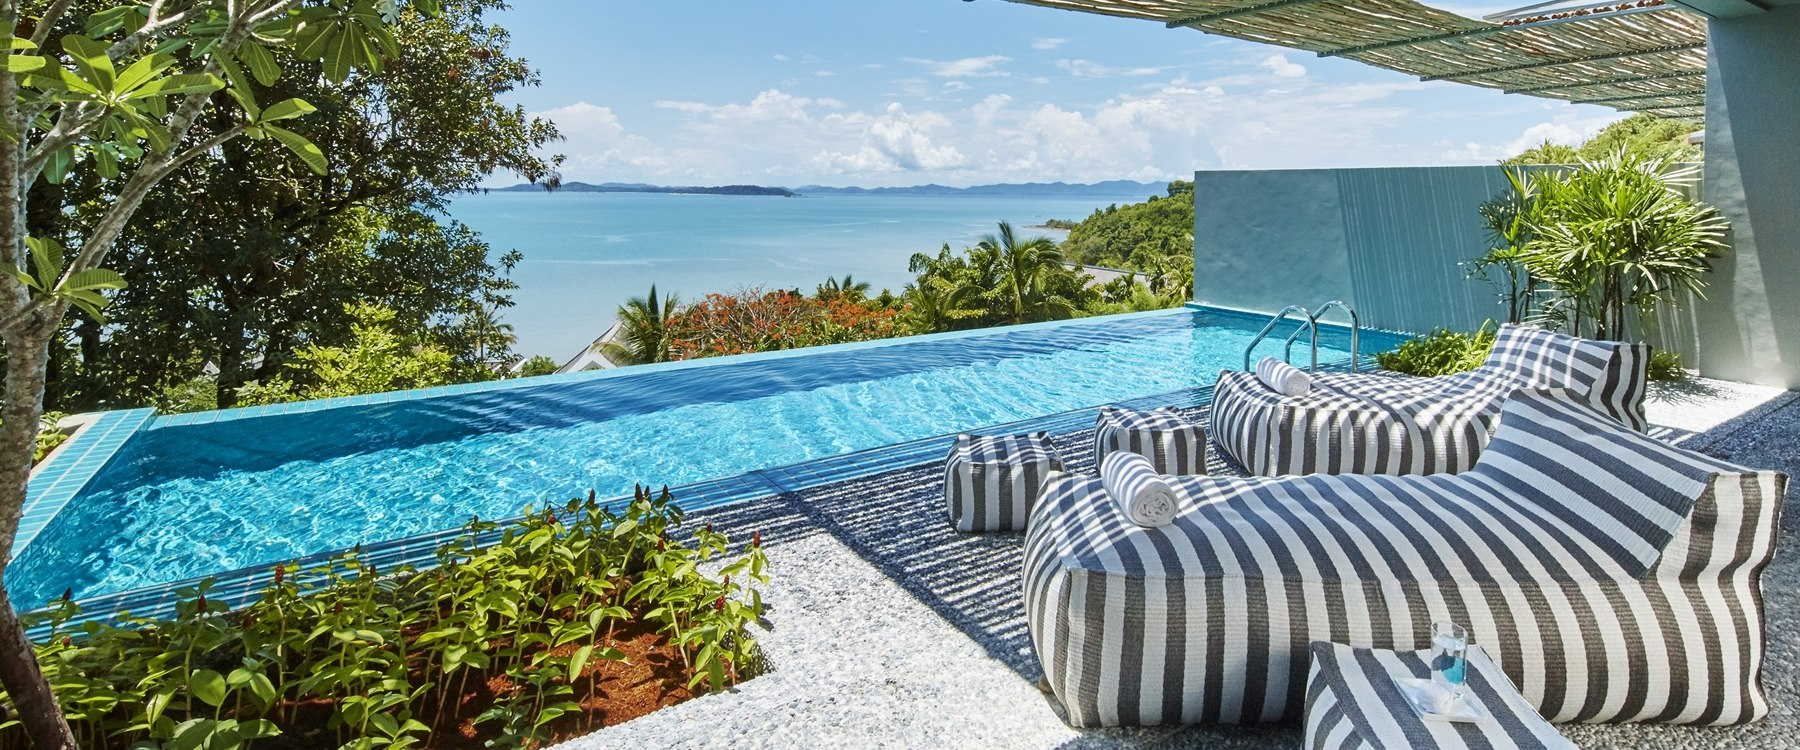 bay suite pool  at point yamu by como